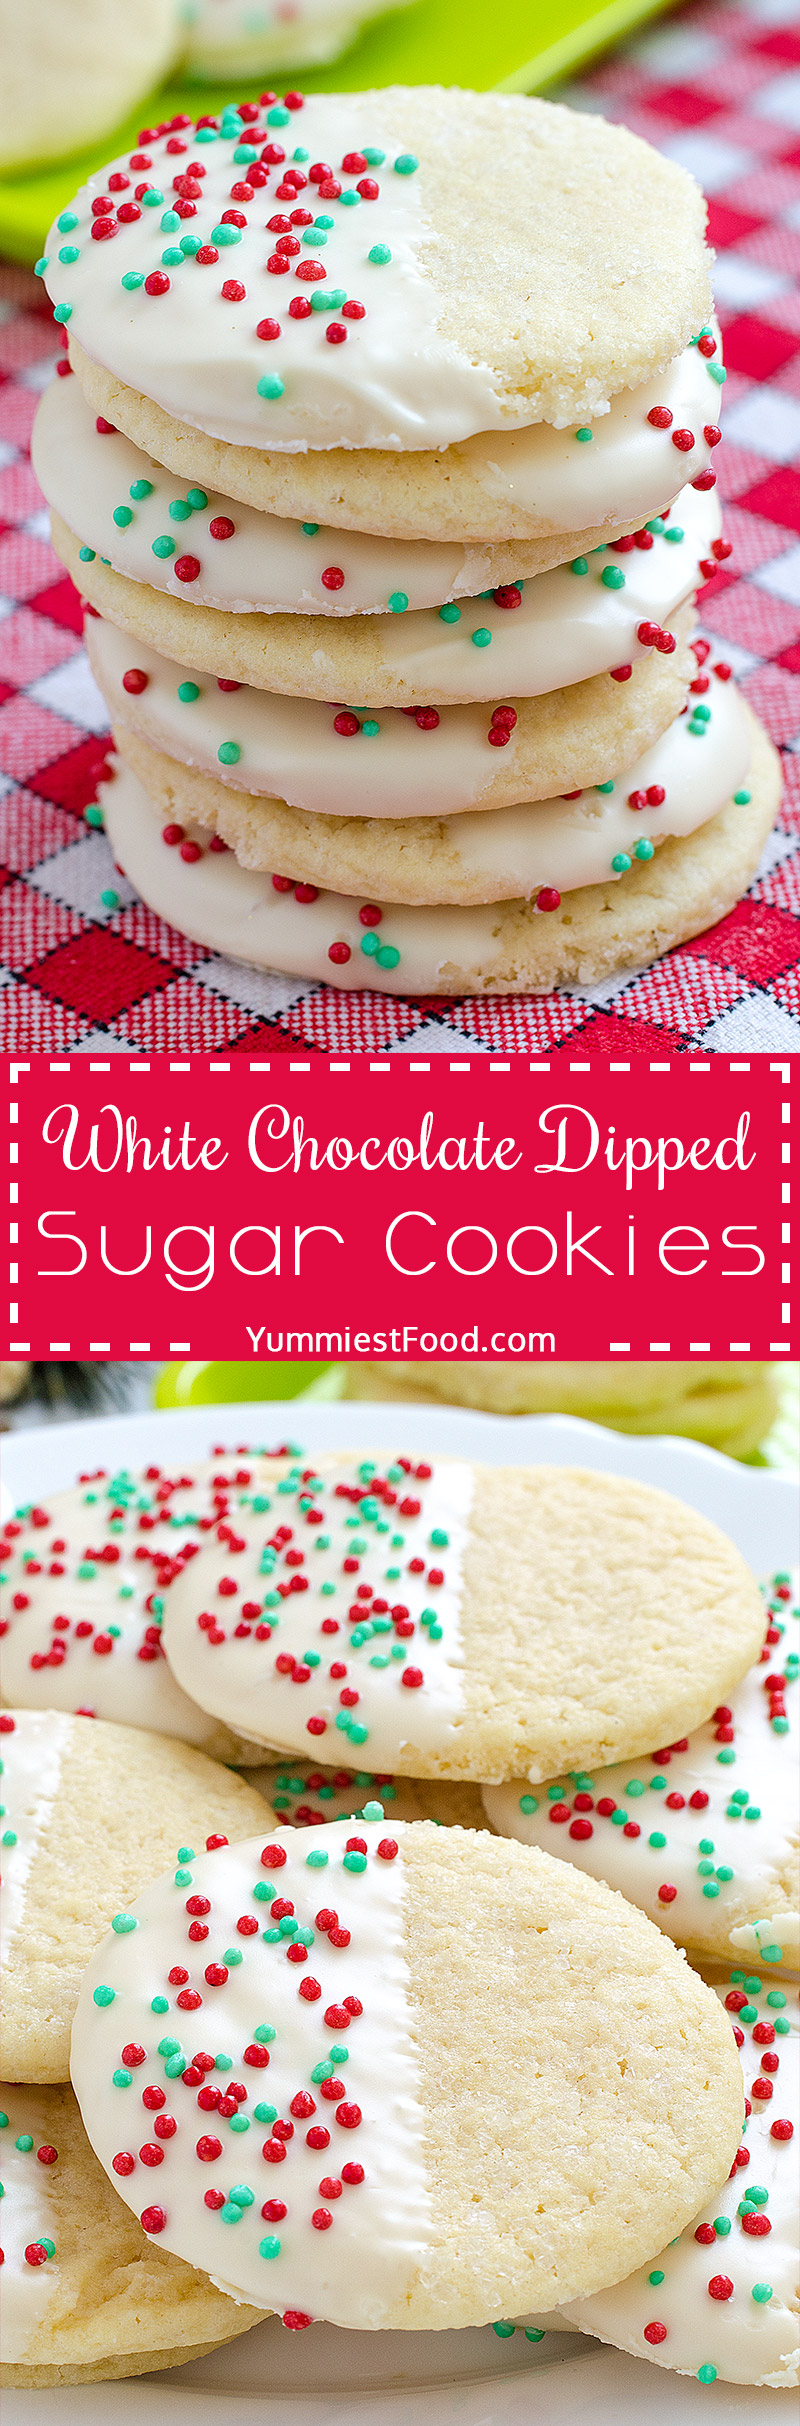 White Chocolate Dipped Sugar Cookies - a Christmas cookies must! So delicious, cute and very easy to make.